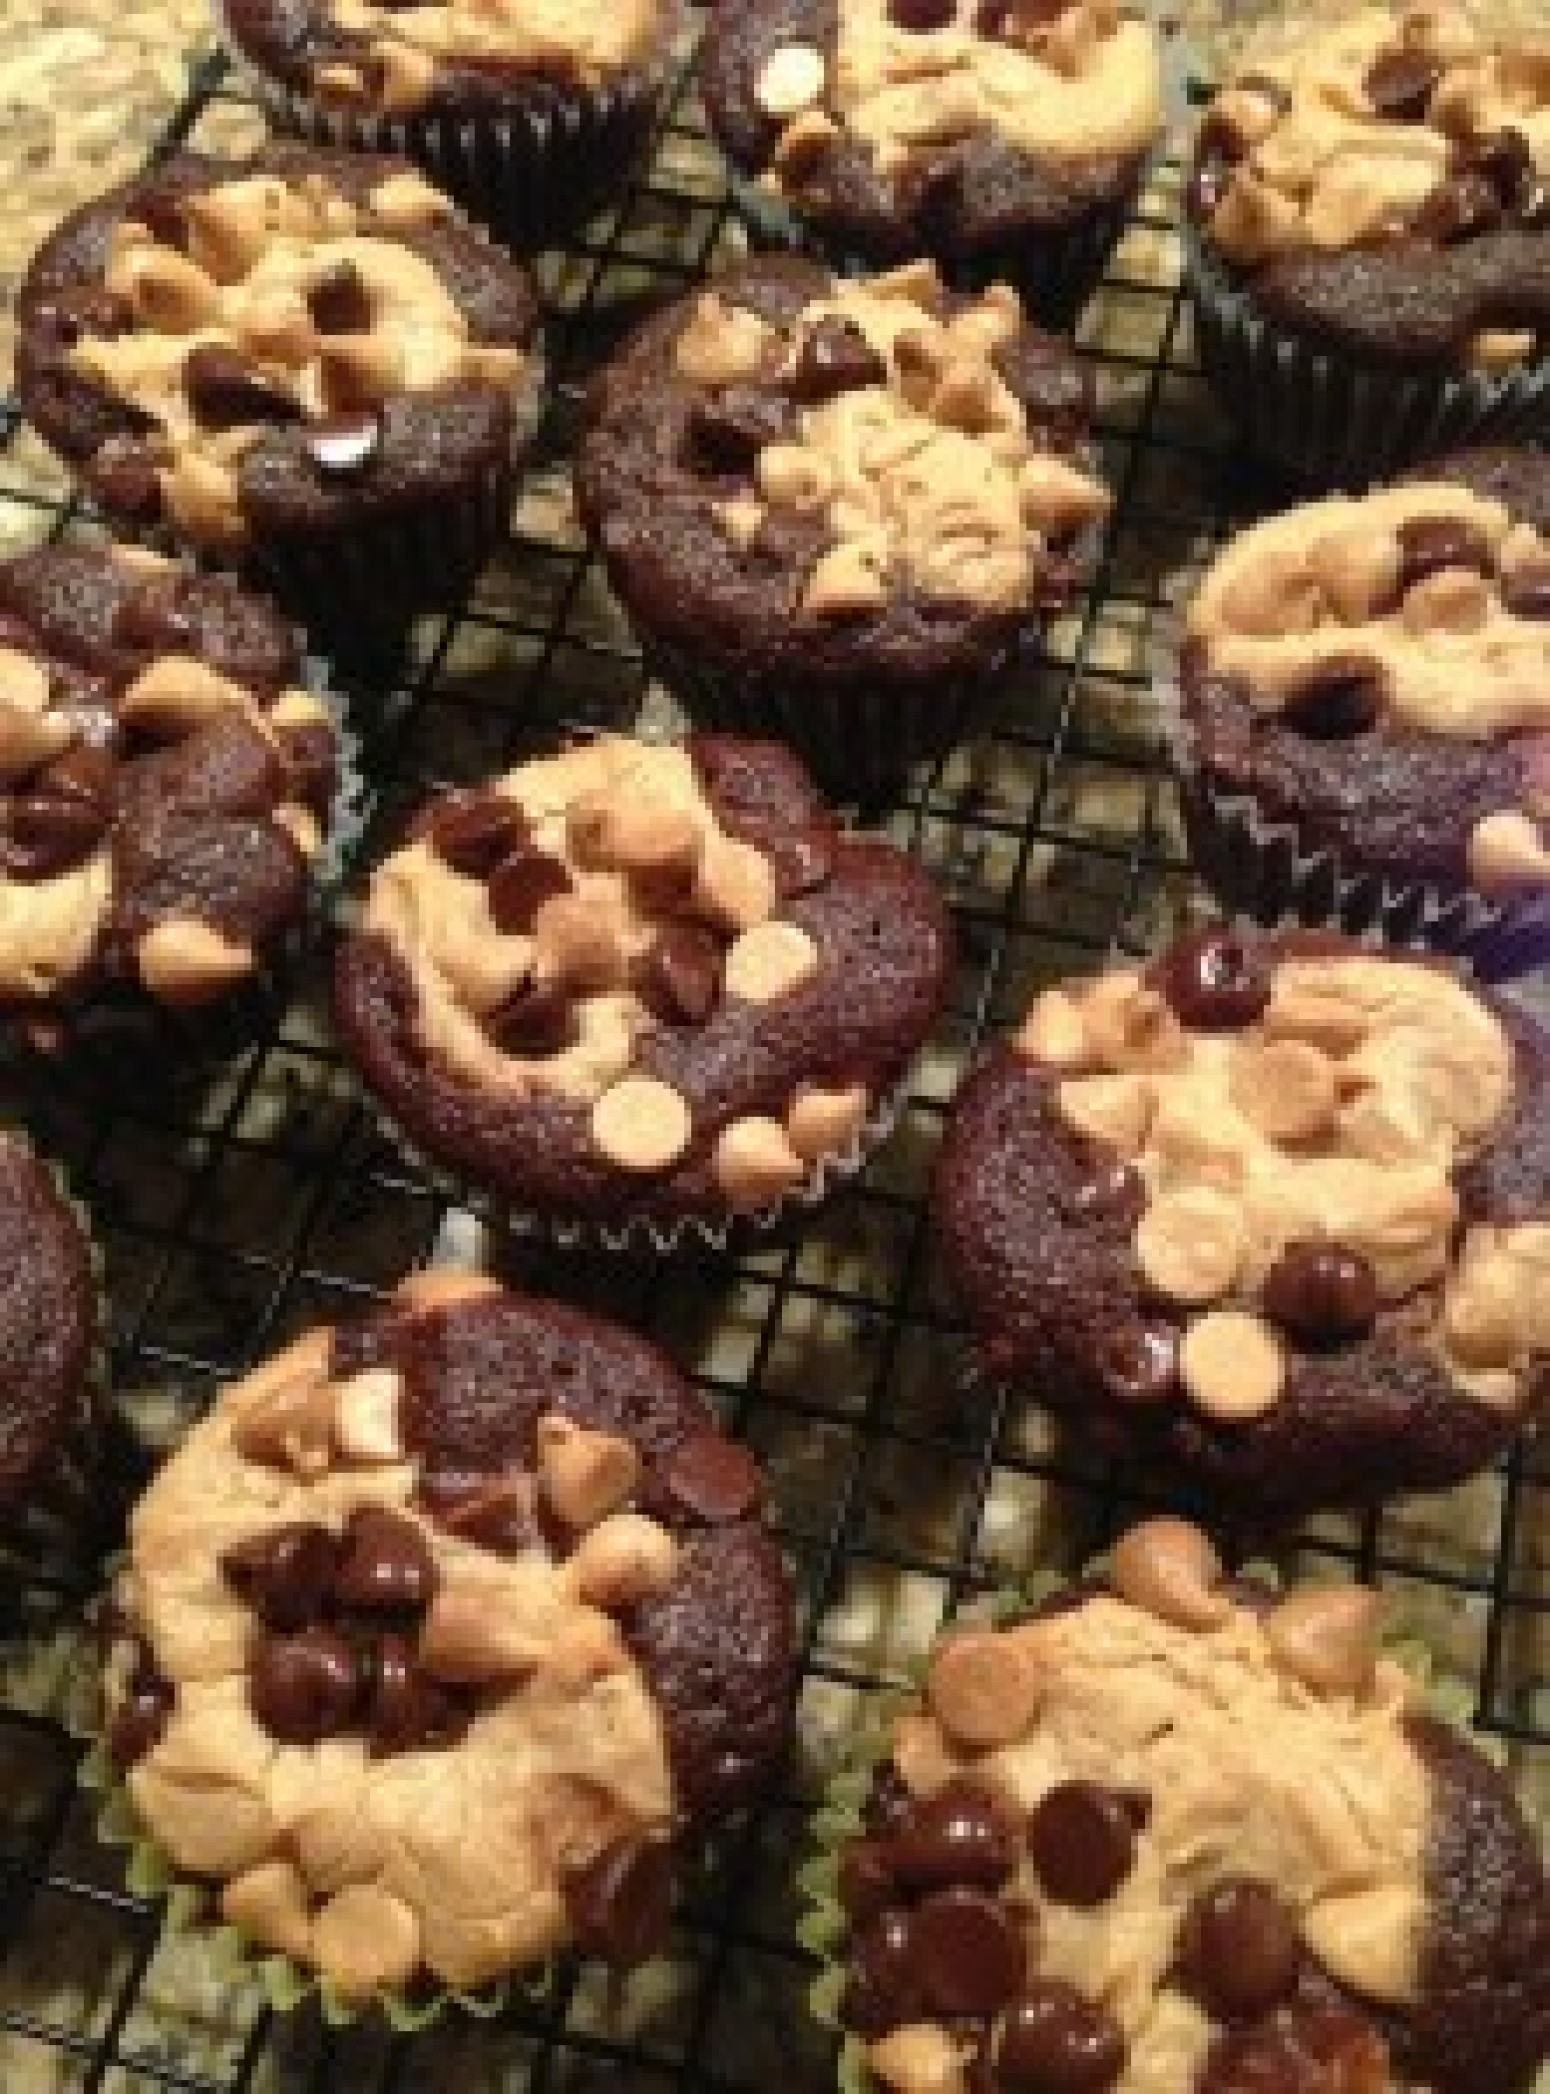 Chocolate Peanut Butter Layered Cupcakes Recipe 5 | Just A Pinch ...